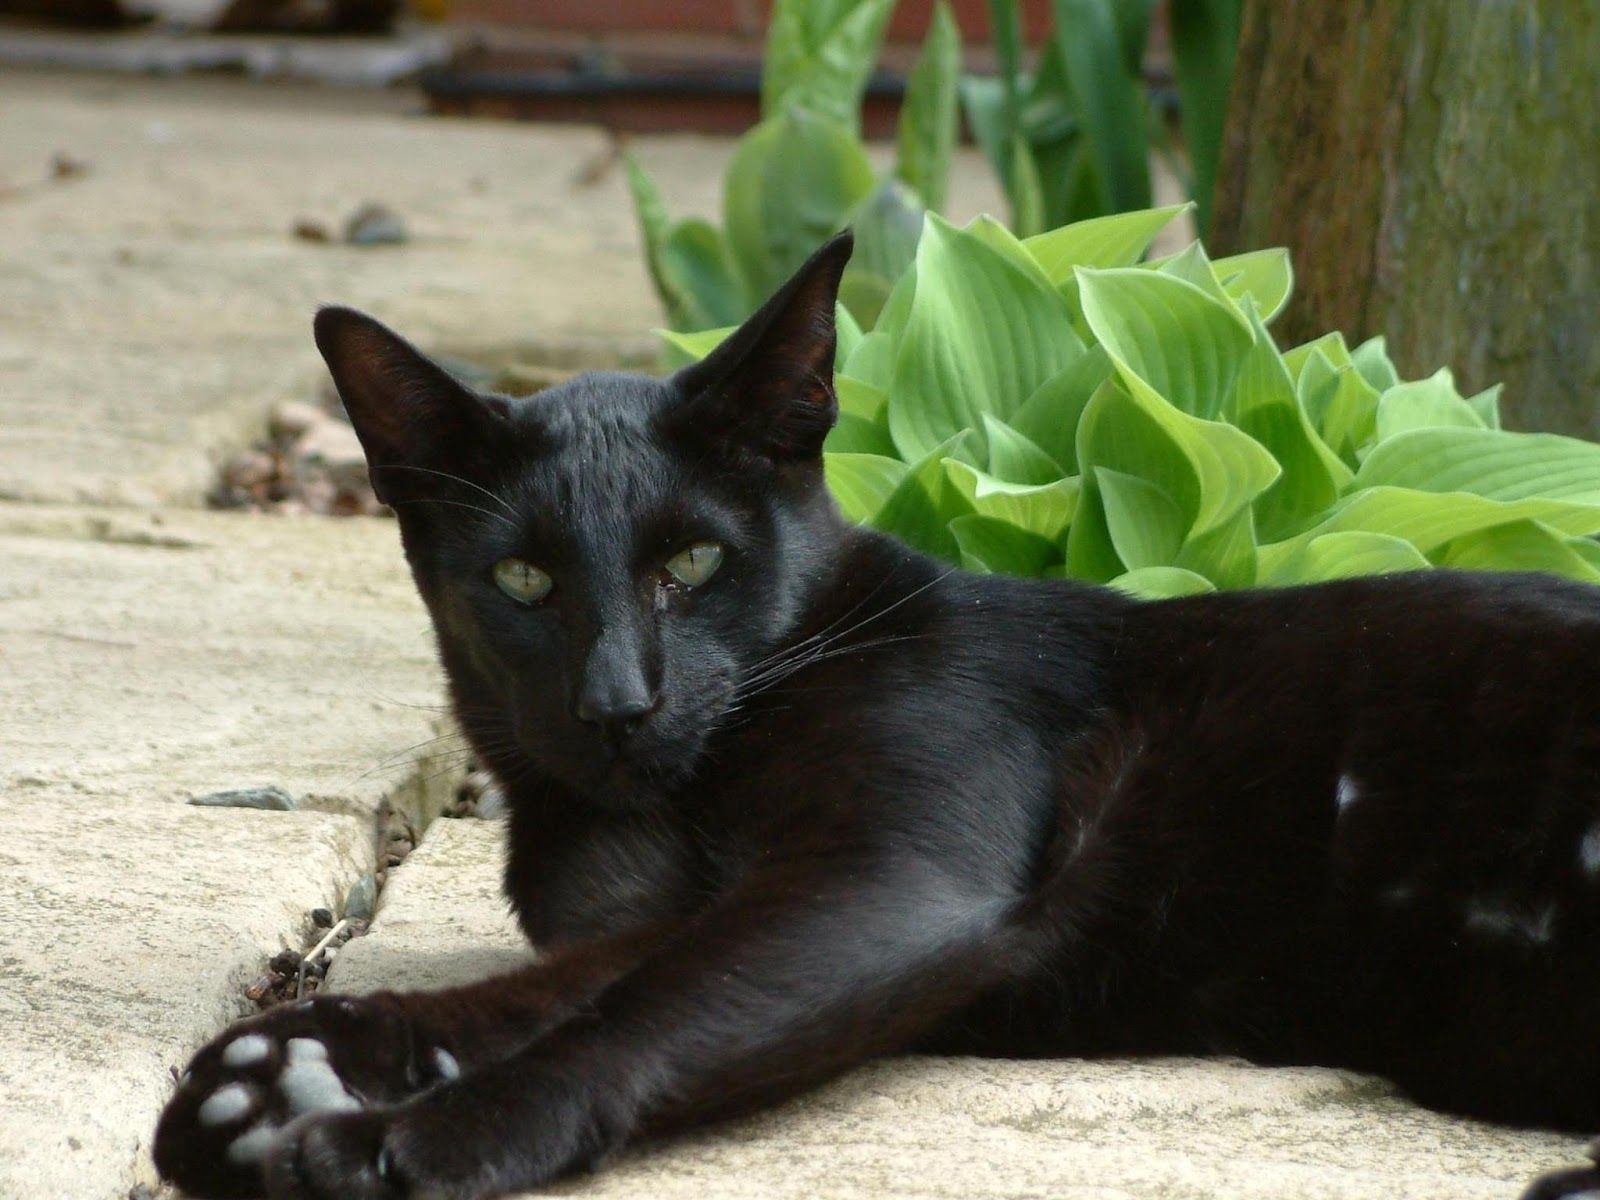 Cats Types All Black Cat Breed Black Cat Breeds Oriental Shorthair Kittens Black Cat Pictures